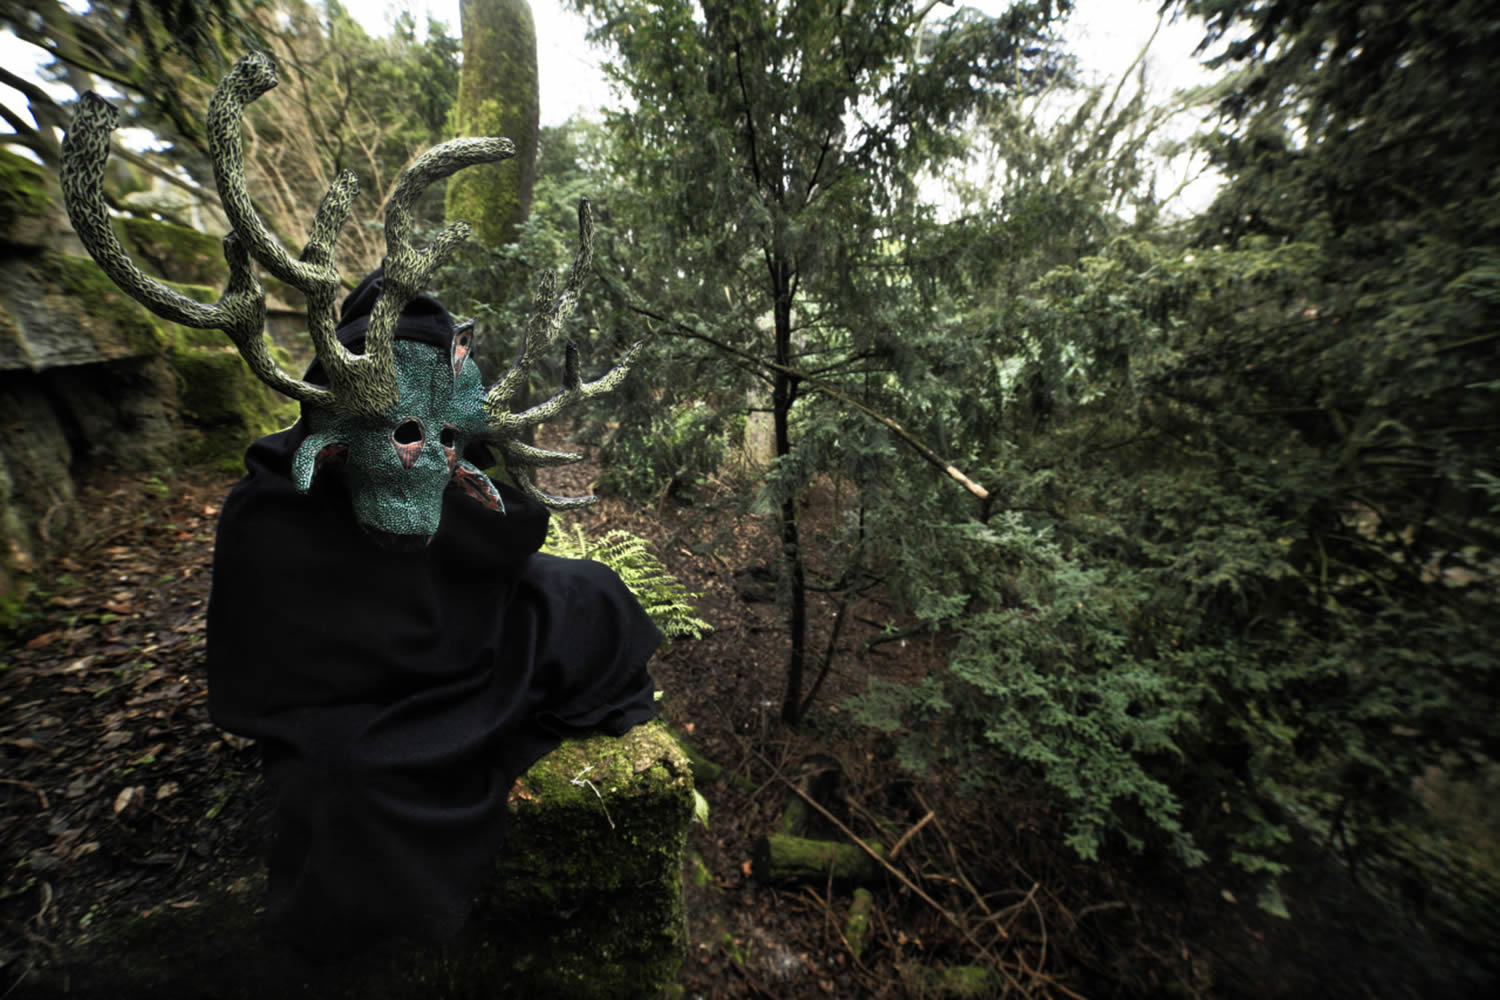 green mask with horns, by Leonard Condemine